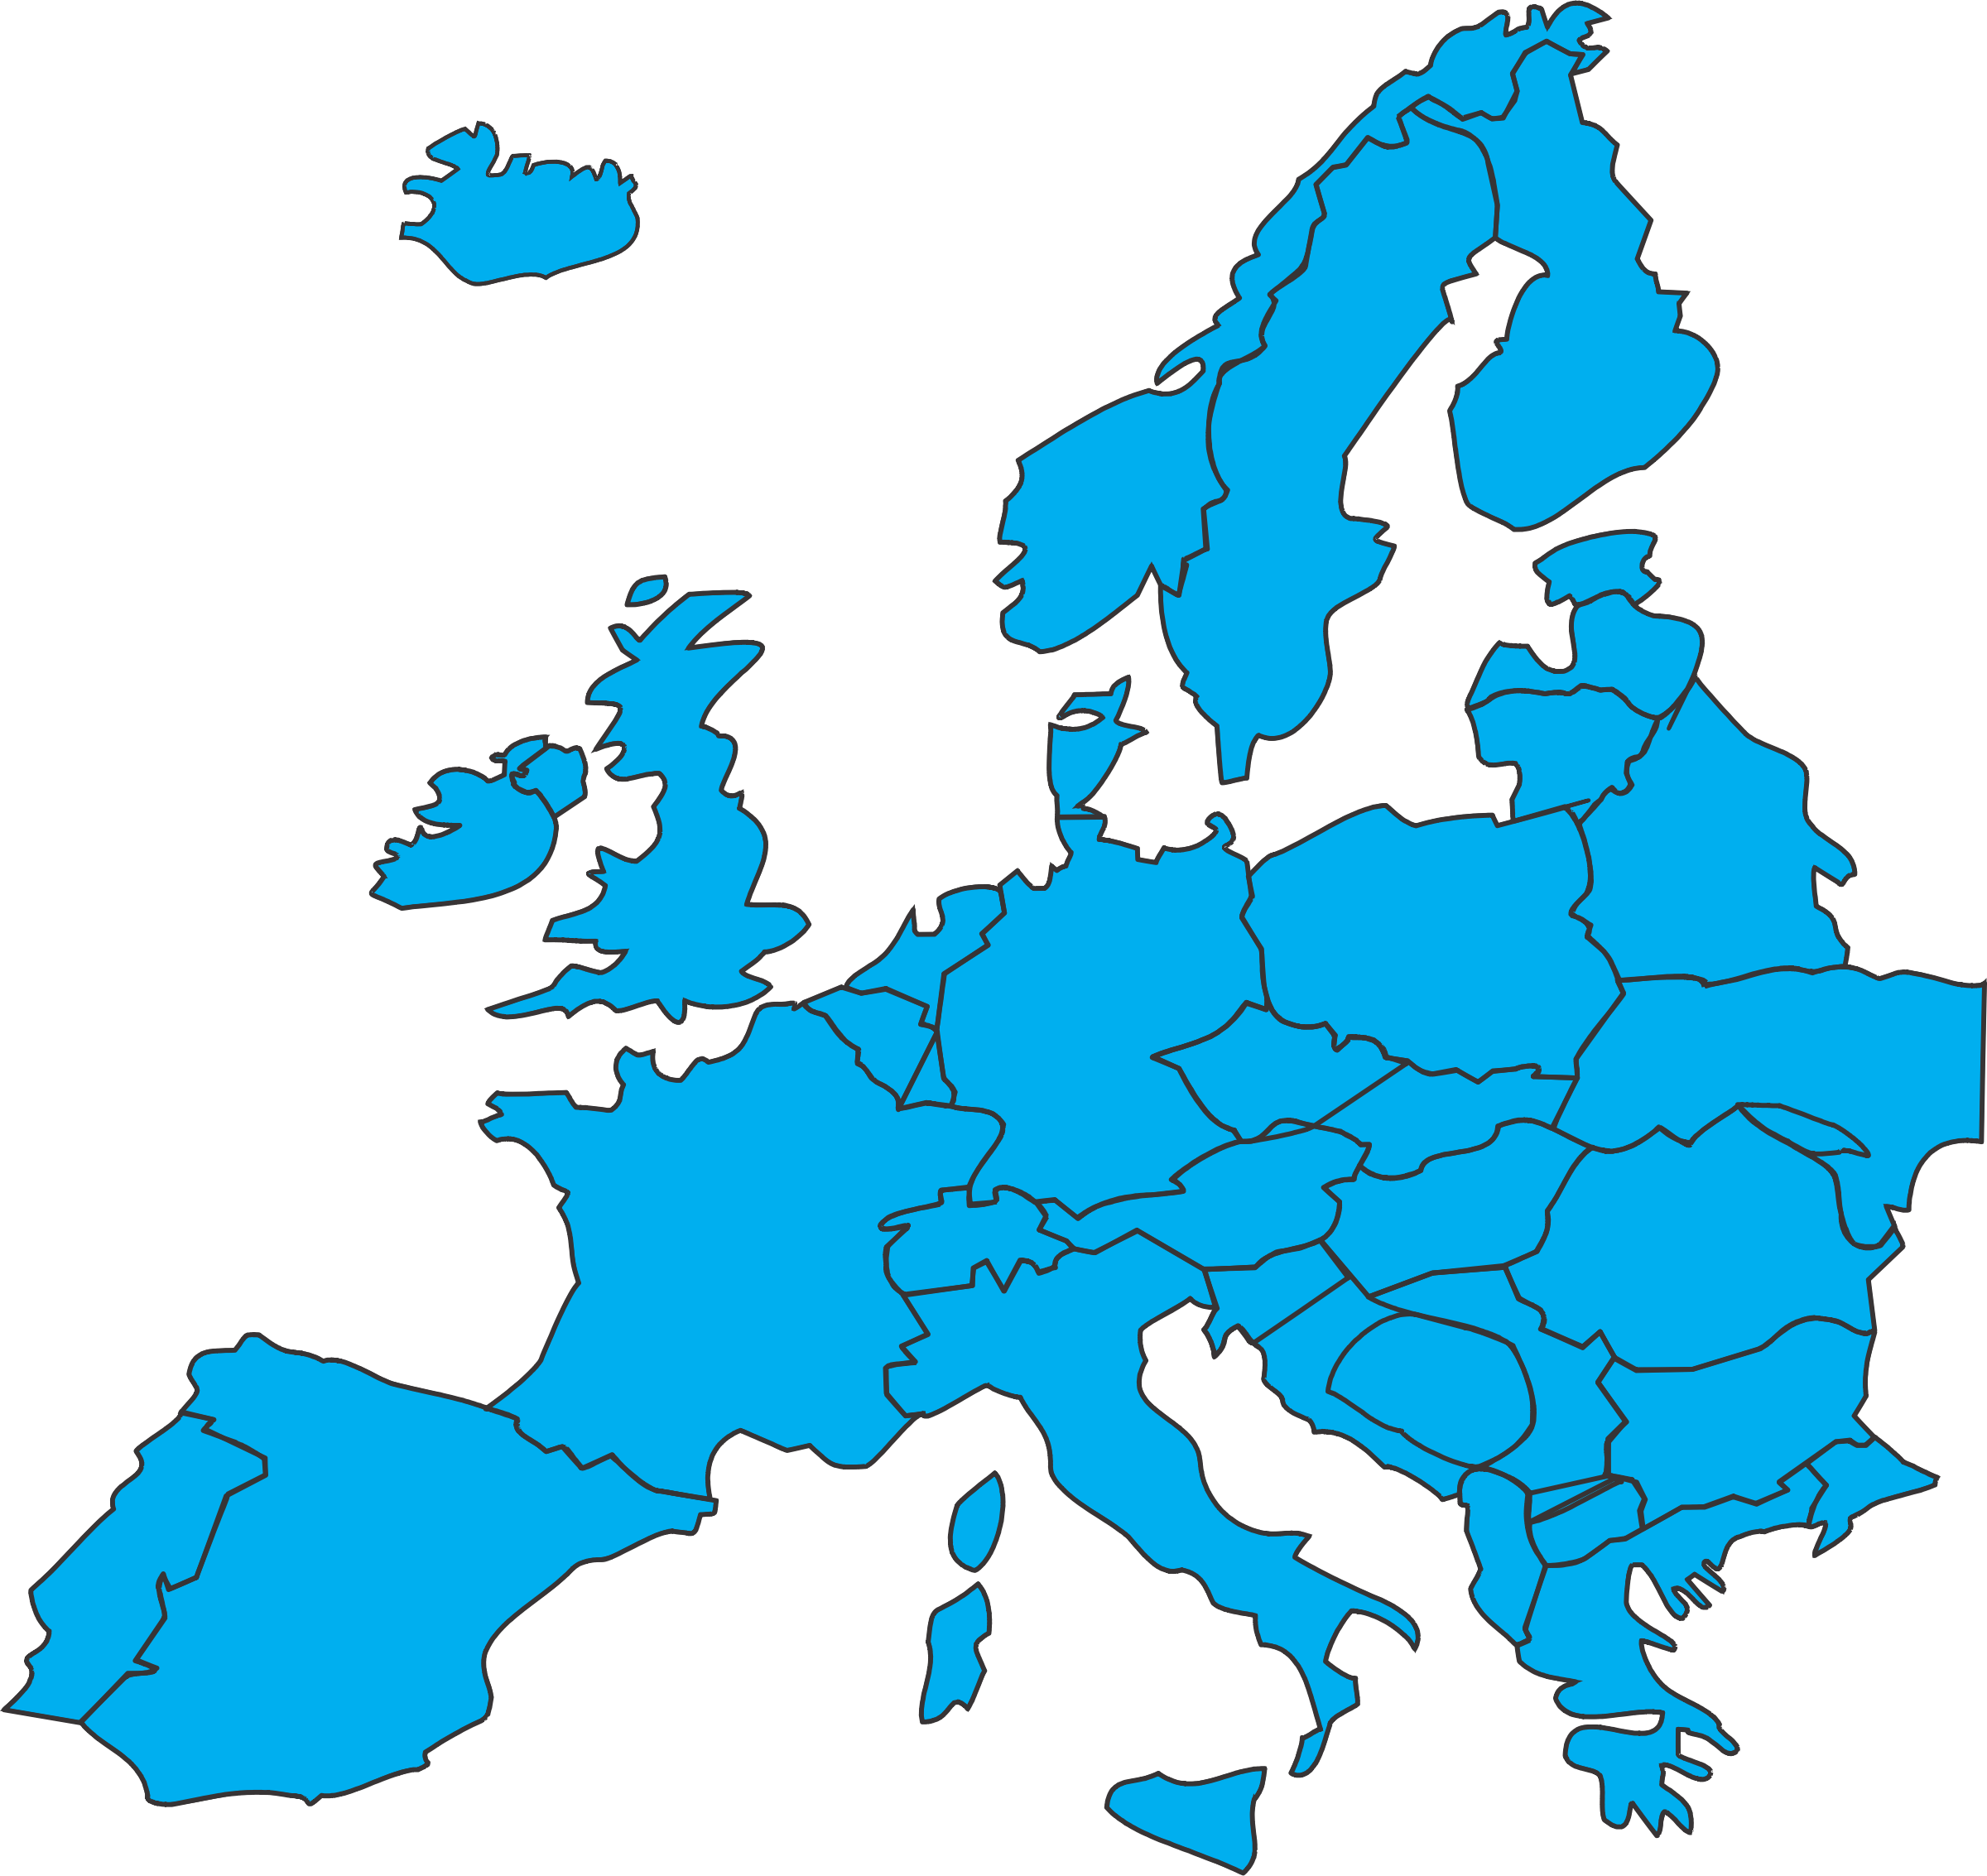 Clipart European Map - European map